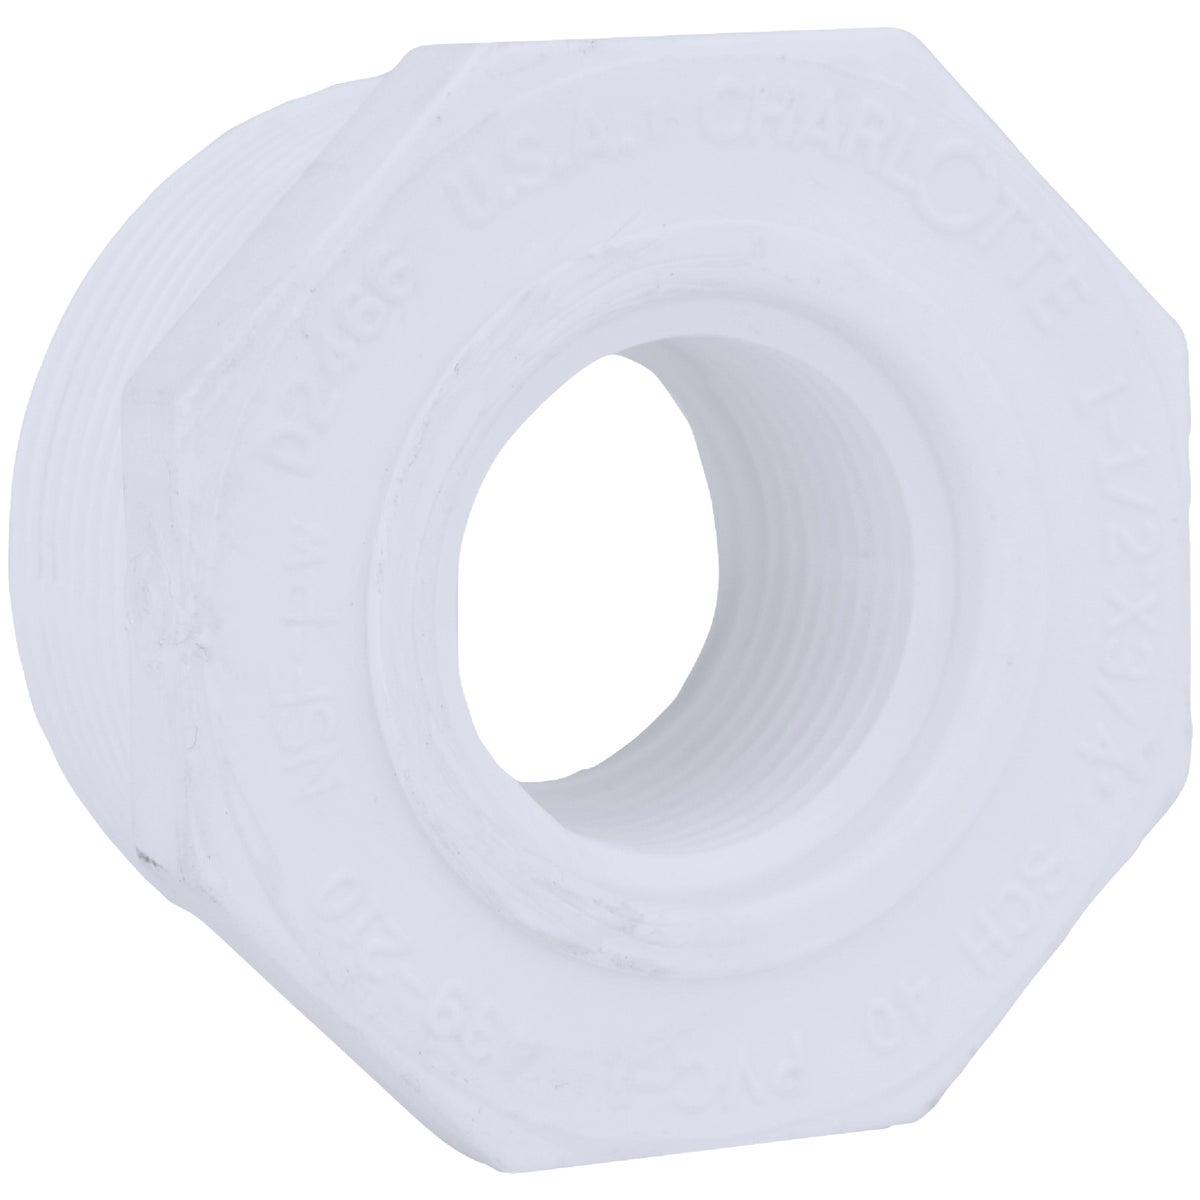 11/2X3/4 MIPXFIP BUSHING - 34357 by Genova Inc